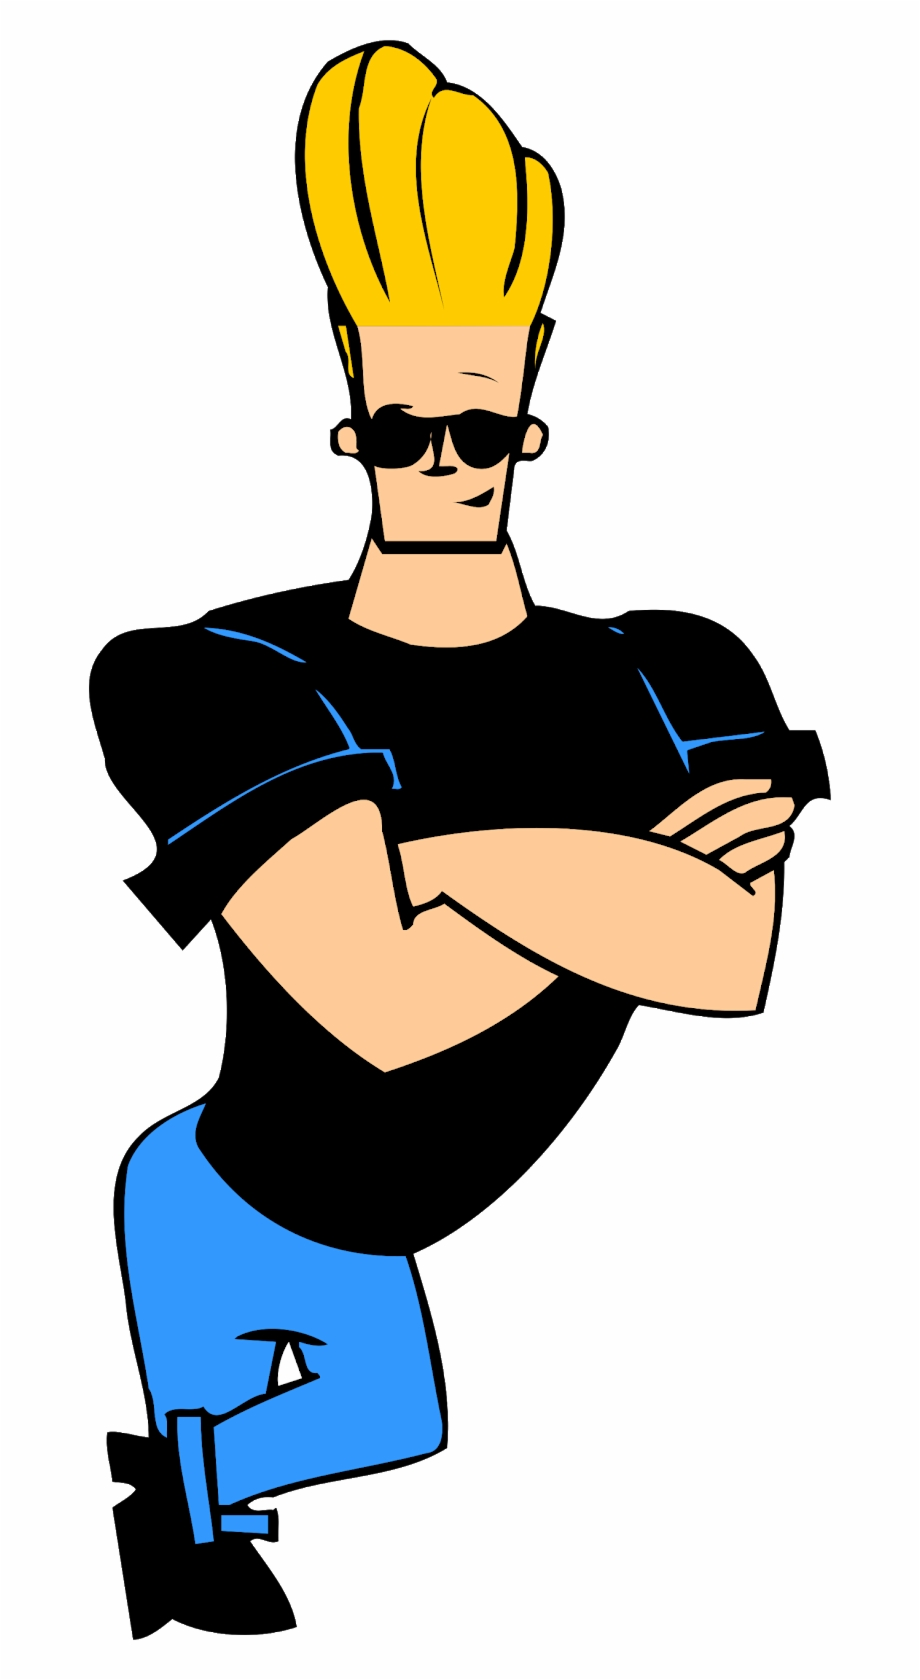 Characters johnny bravo. Cartoon character